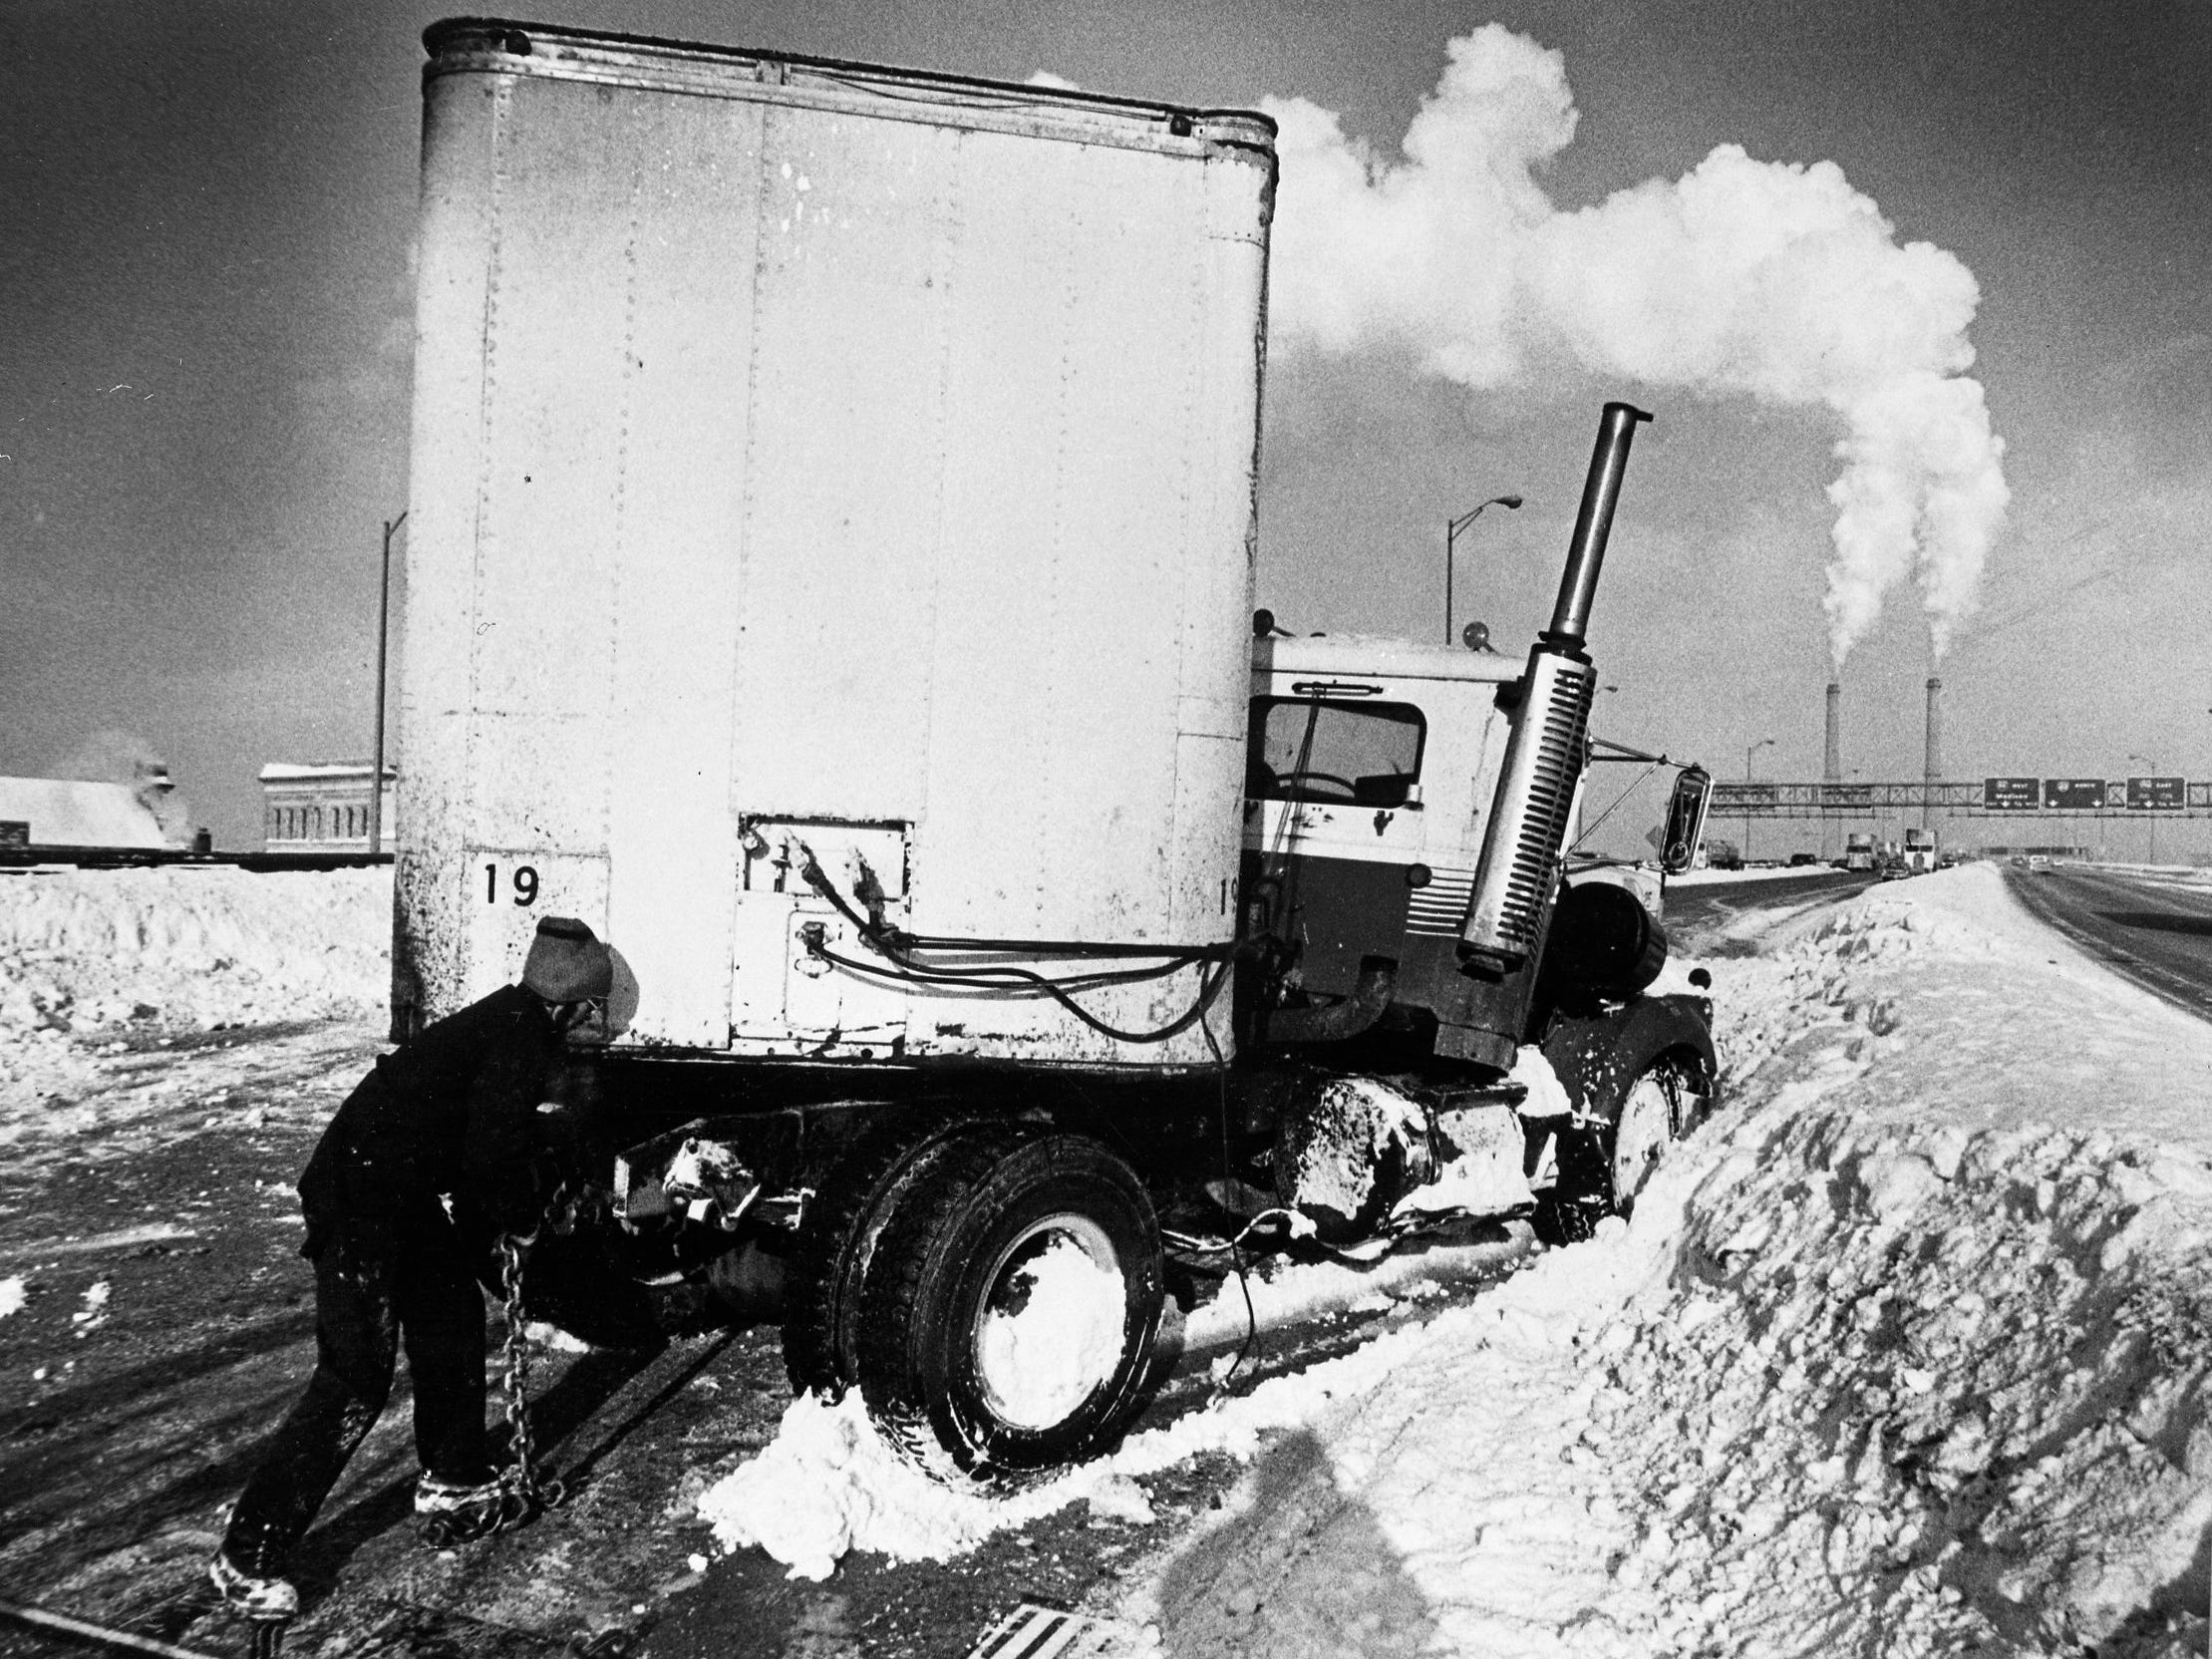 A man takes a look at a semi-trailer that jackknifed on the ice on the High Rise Bridge on I-94 on Jan. 16, 1979. No one was injured in the accident. After a snowstorm dumped more than 14 inches of snow on Milwaukee, the city was hit by a brutal cold snap, with below-zero temperatures and wind chills as low as 50 below. This photo was published in the Jan. 17, 1979, Milwaukee Journal.